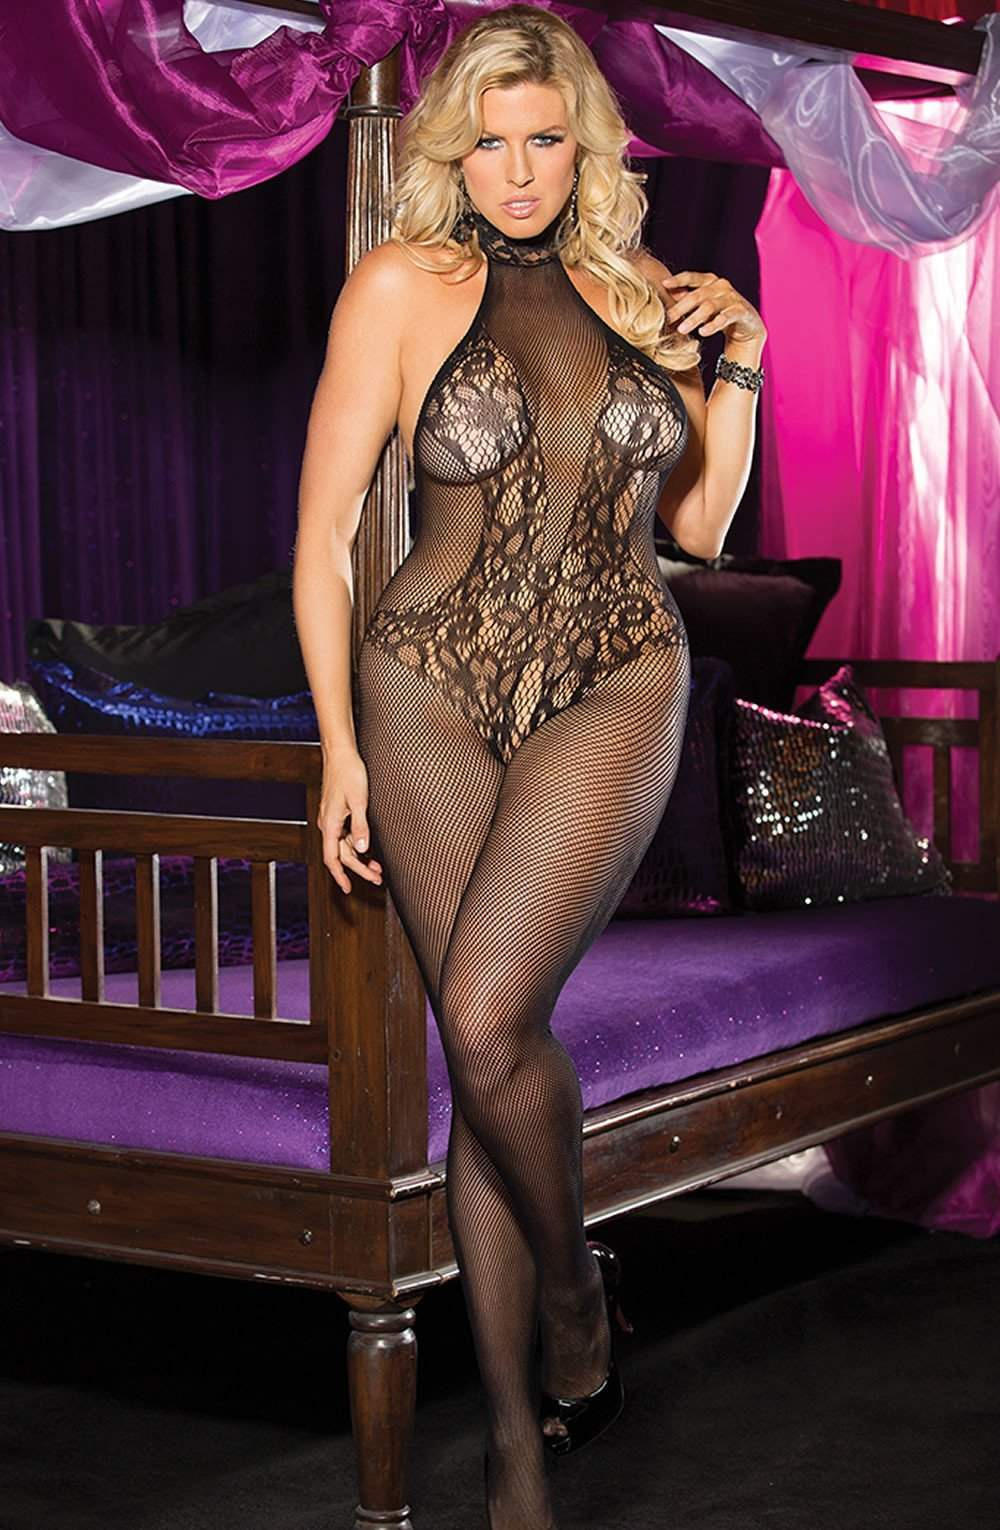 SoH-HS X90357 Bodystocking Black - Shirley of Hollywood - Katys Boutique Lingerie USA